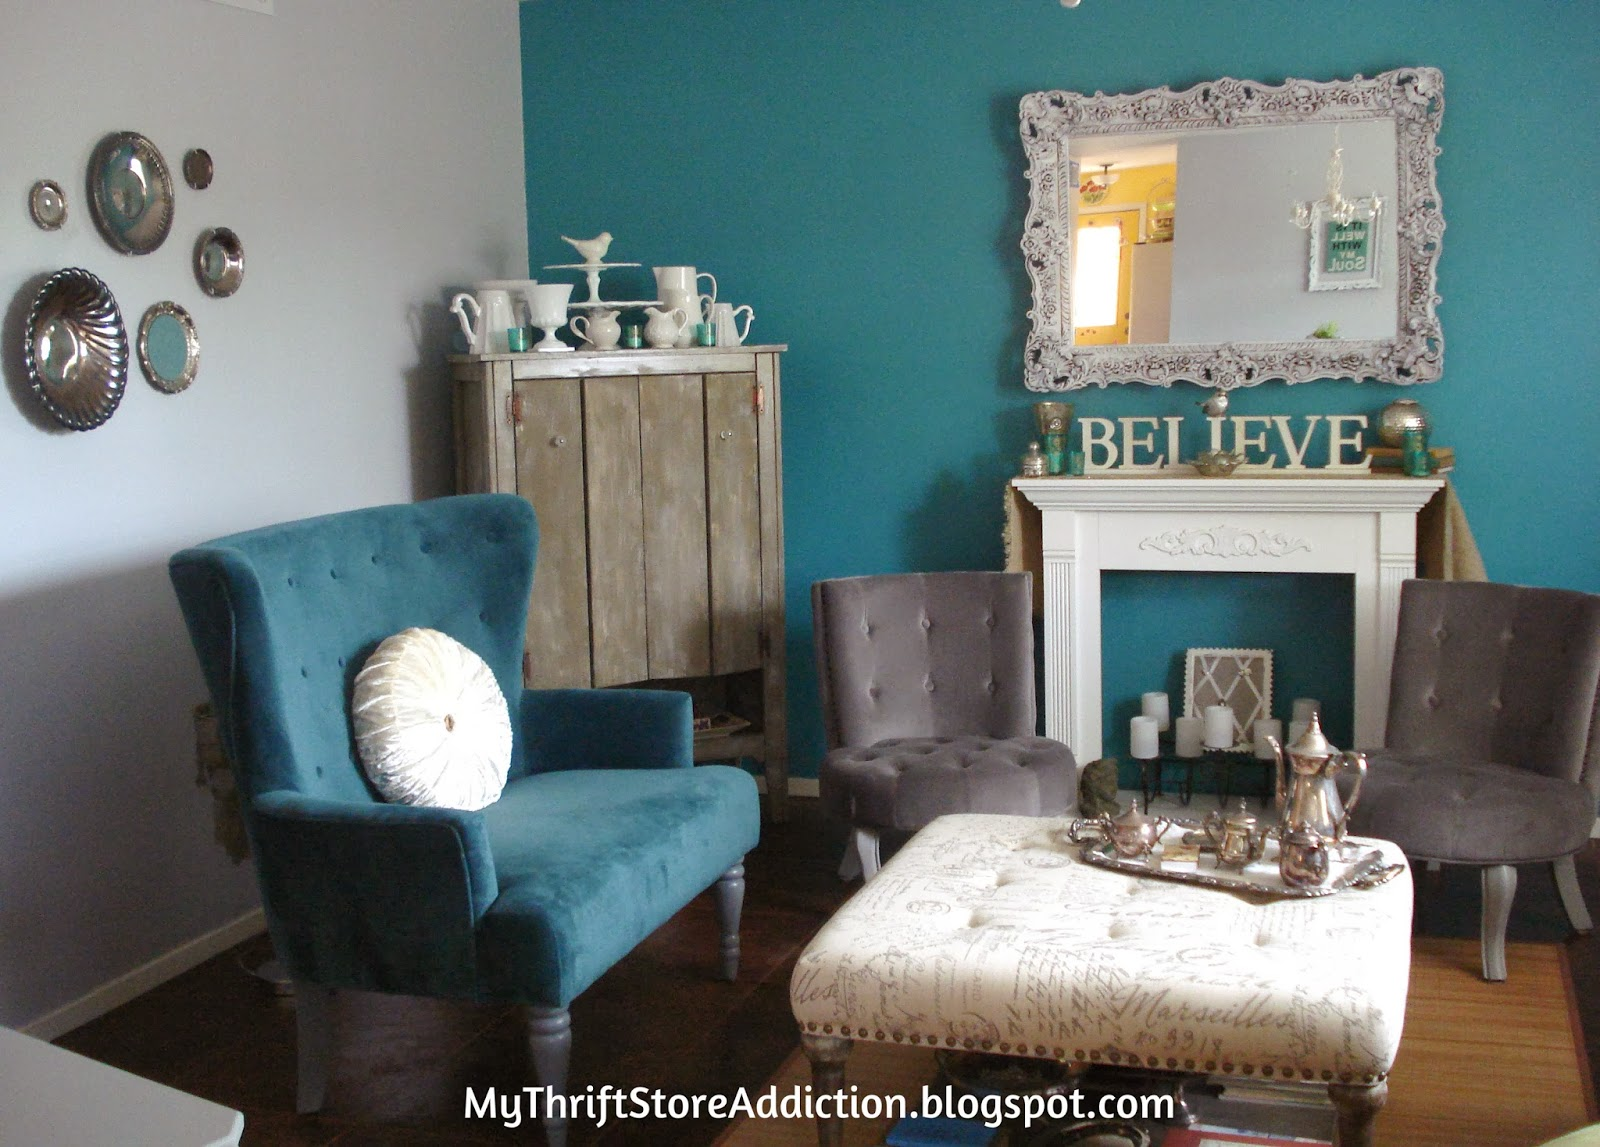 My Thrift Store Addiction Refresh Your Home Gray